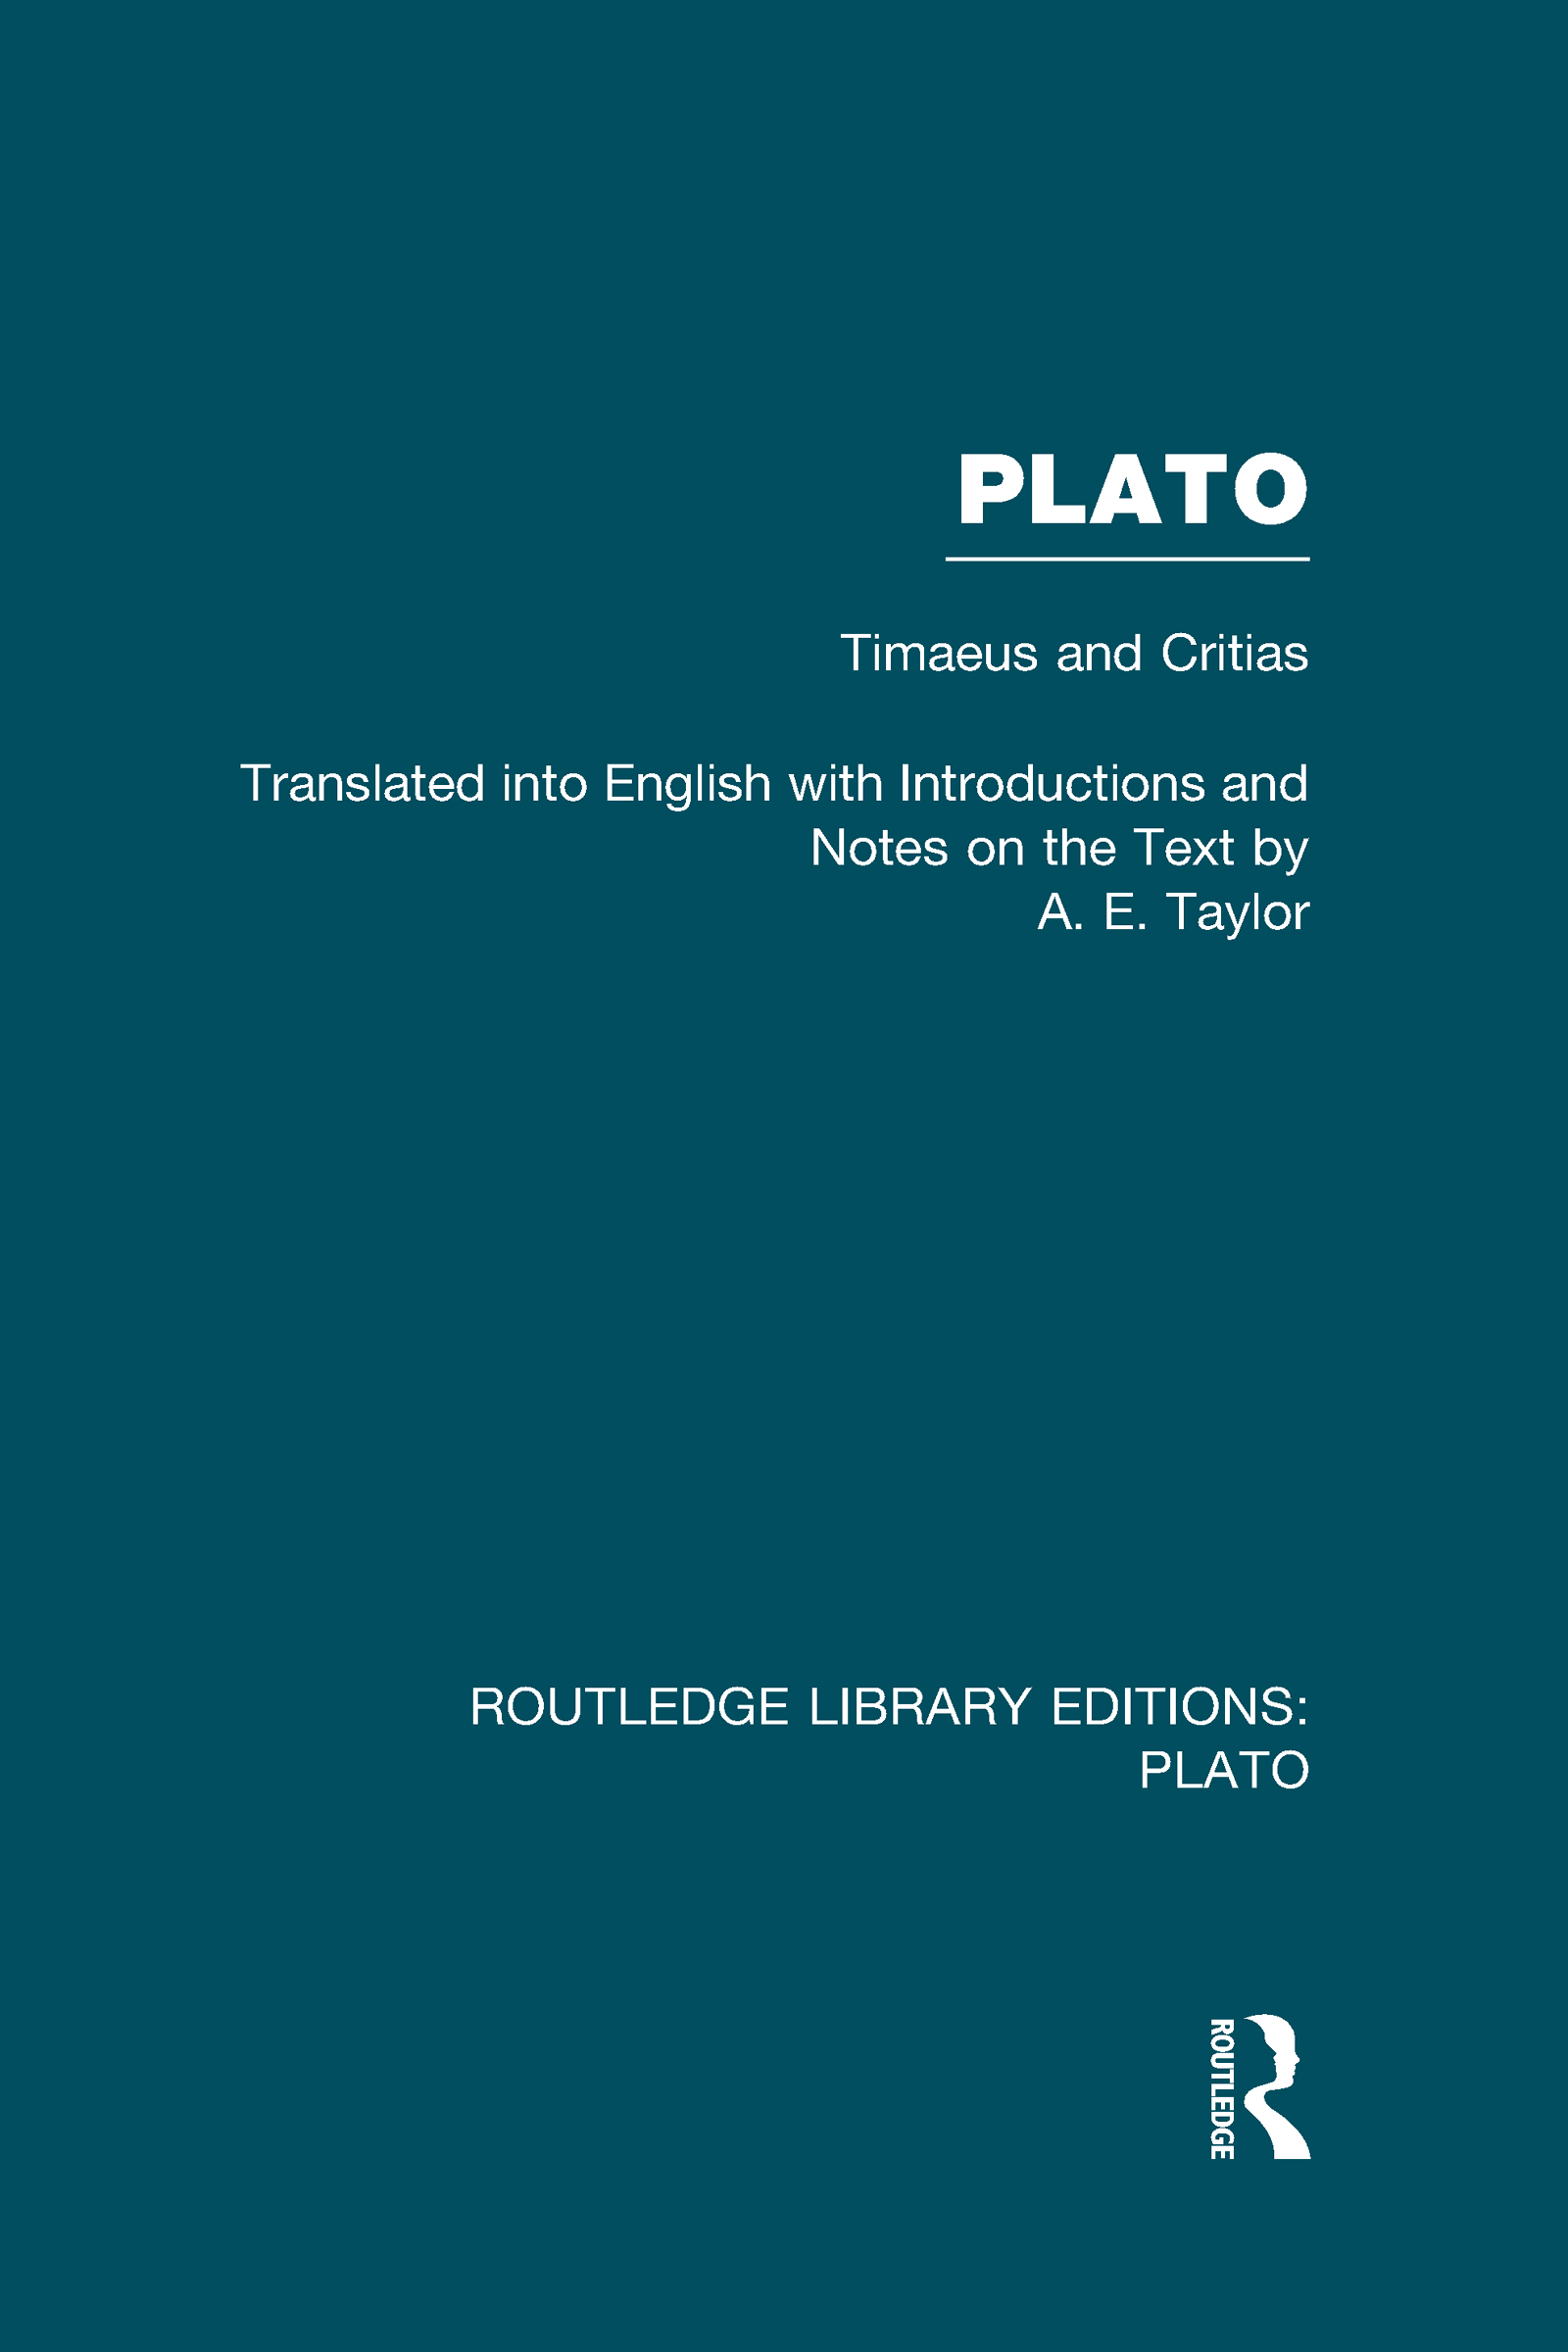 Plato: Timaeus and Critias (RLE: Plato) (Hardback) book cover